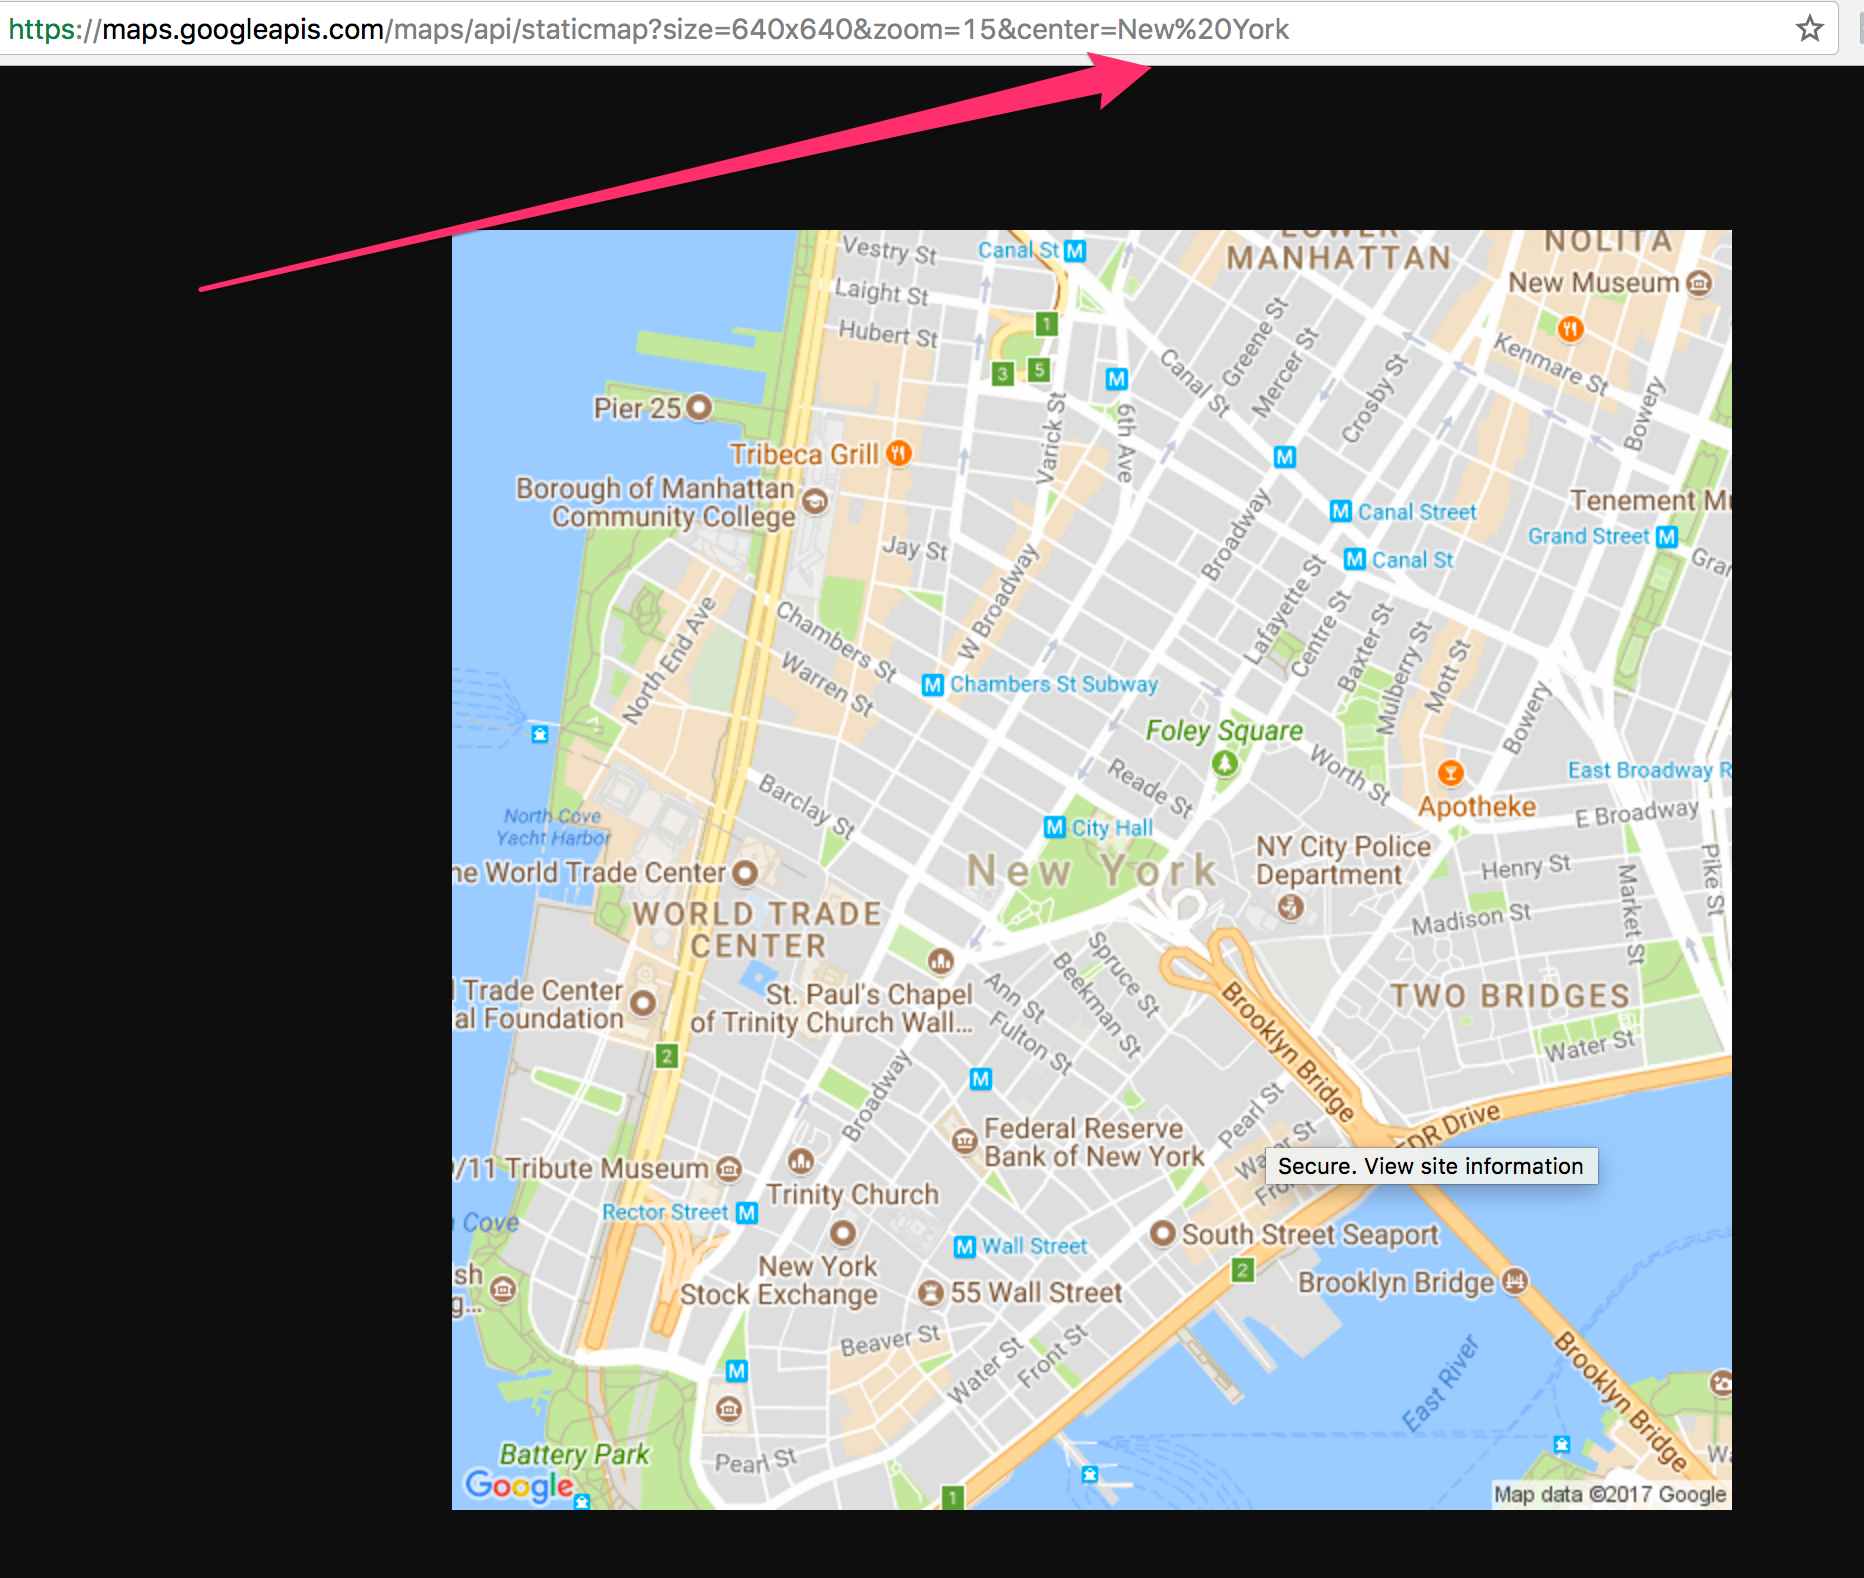 New_York_Google_Maps.png